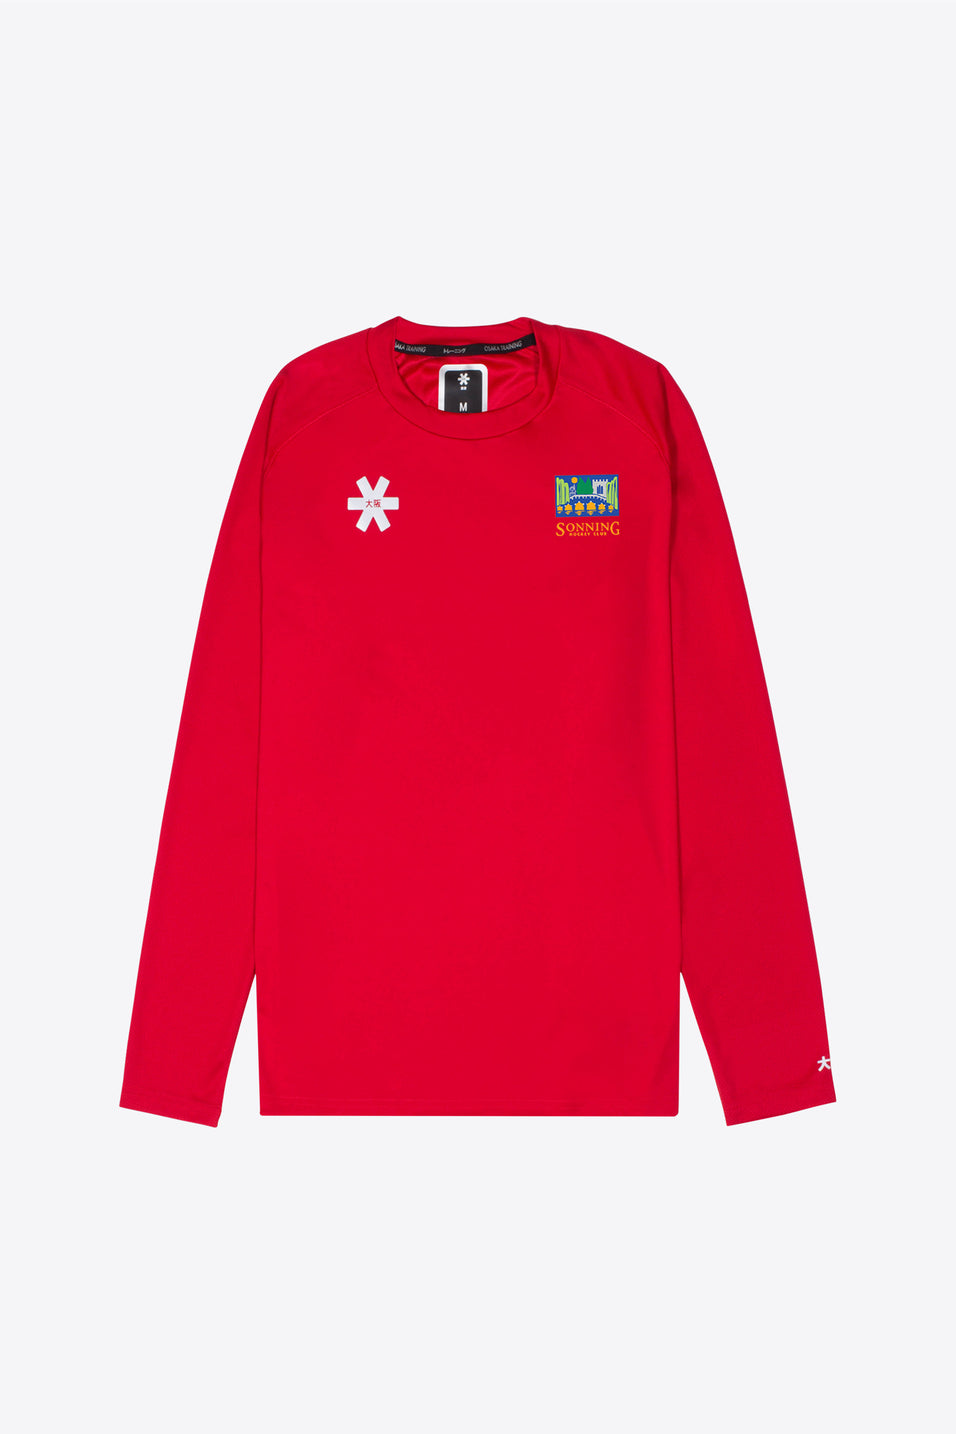 HC Sonning Keeper Shirt - Red